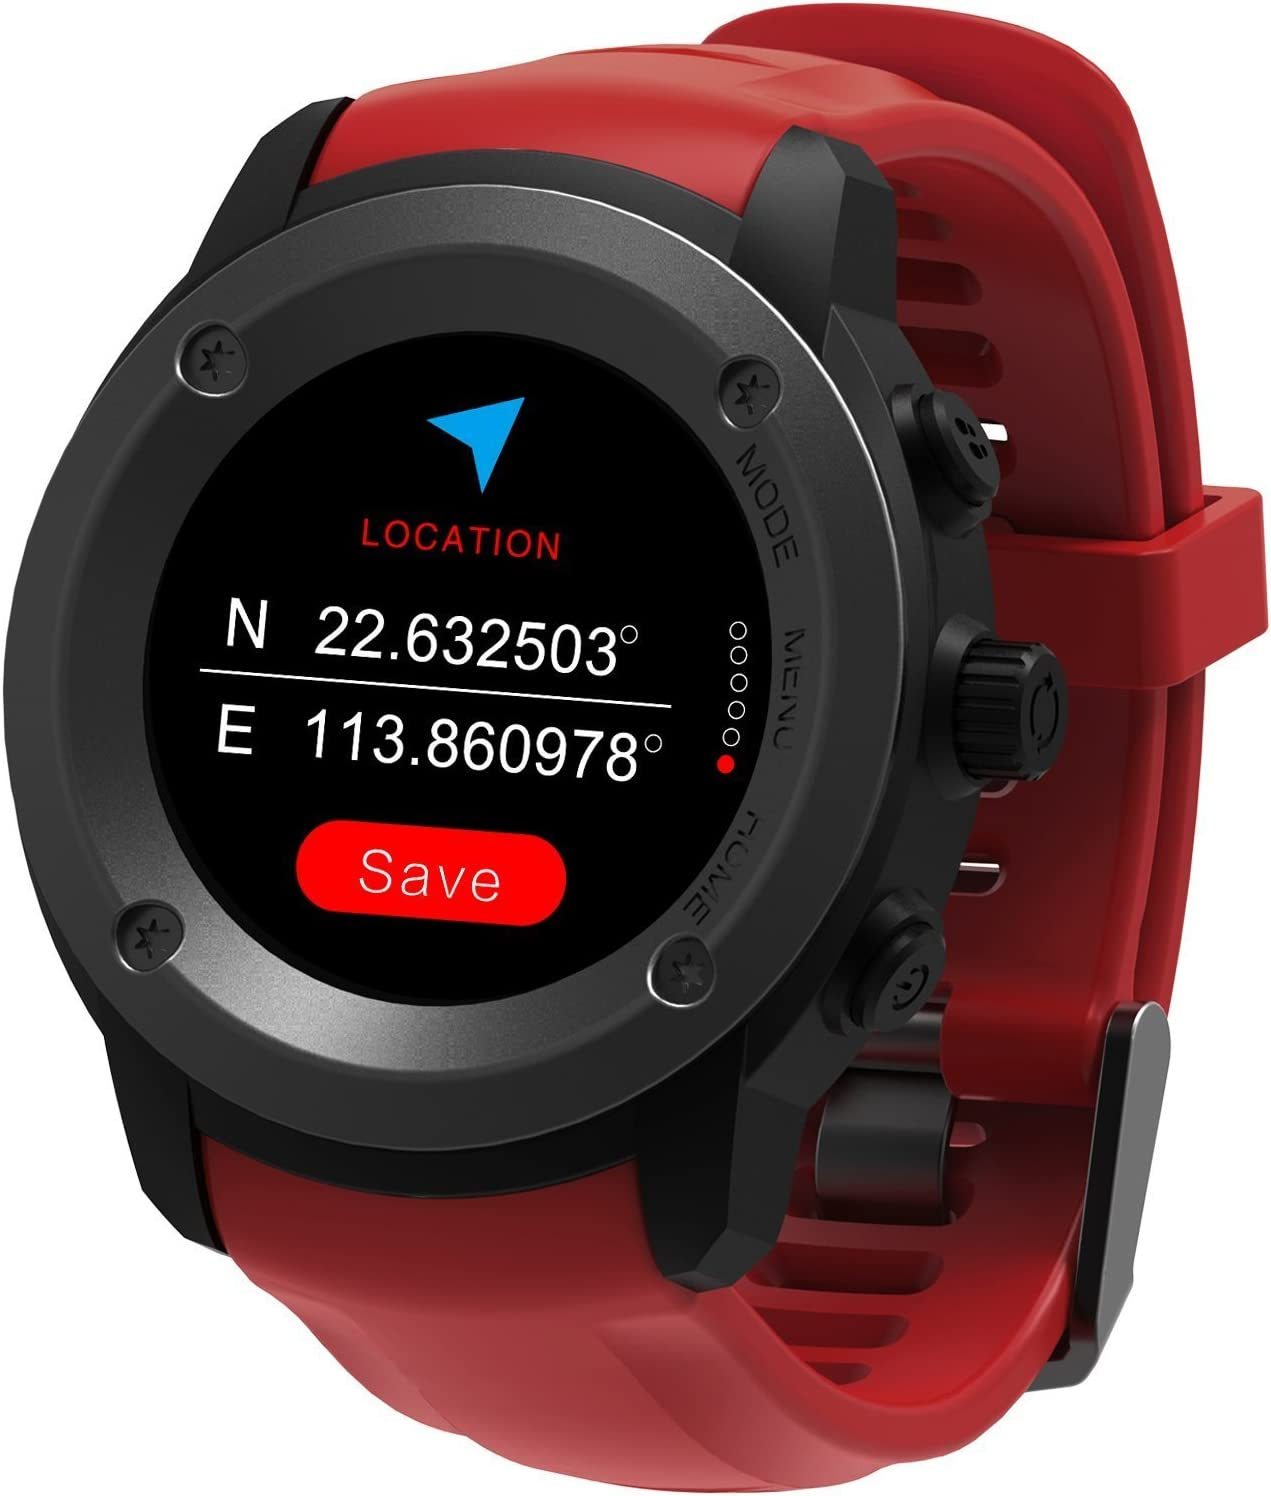 GPS Running Watch Outdoor Sports Stainless Steel Smart Watch Multi Function GPS Training Mode Distance Calorie Speed Time Count With Sleep Heart Rate Monitor Weather Forecast Message Remind Red